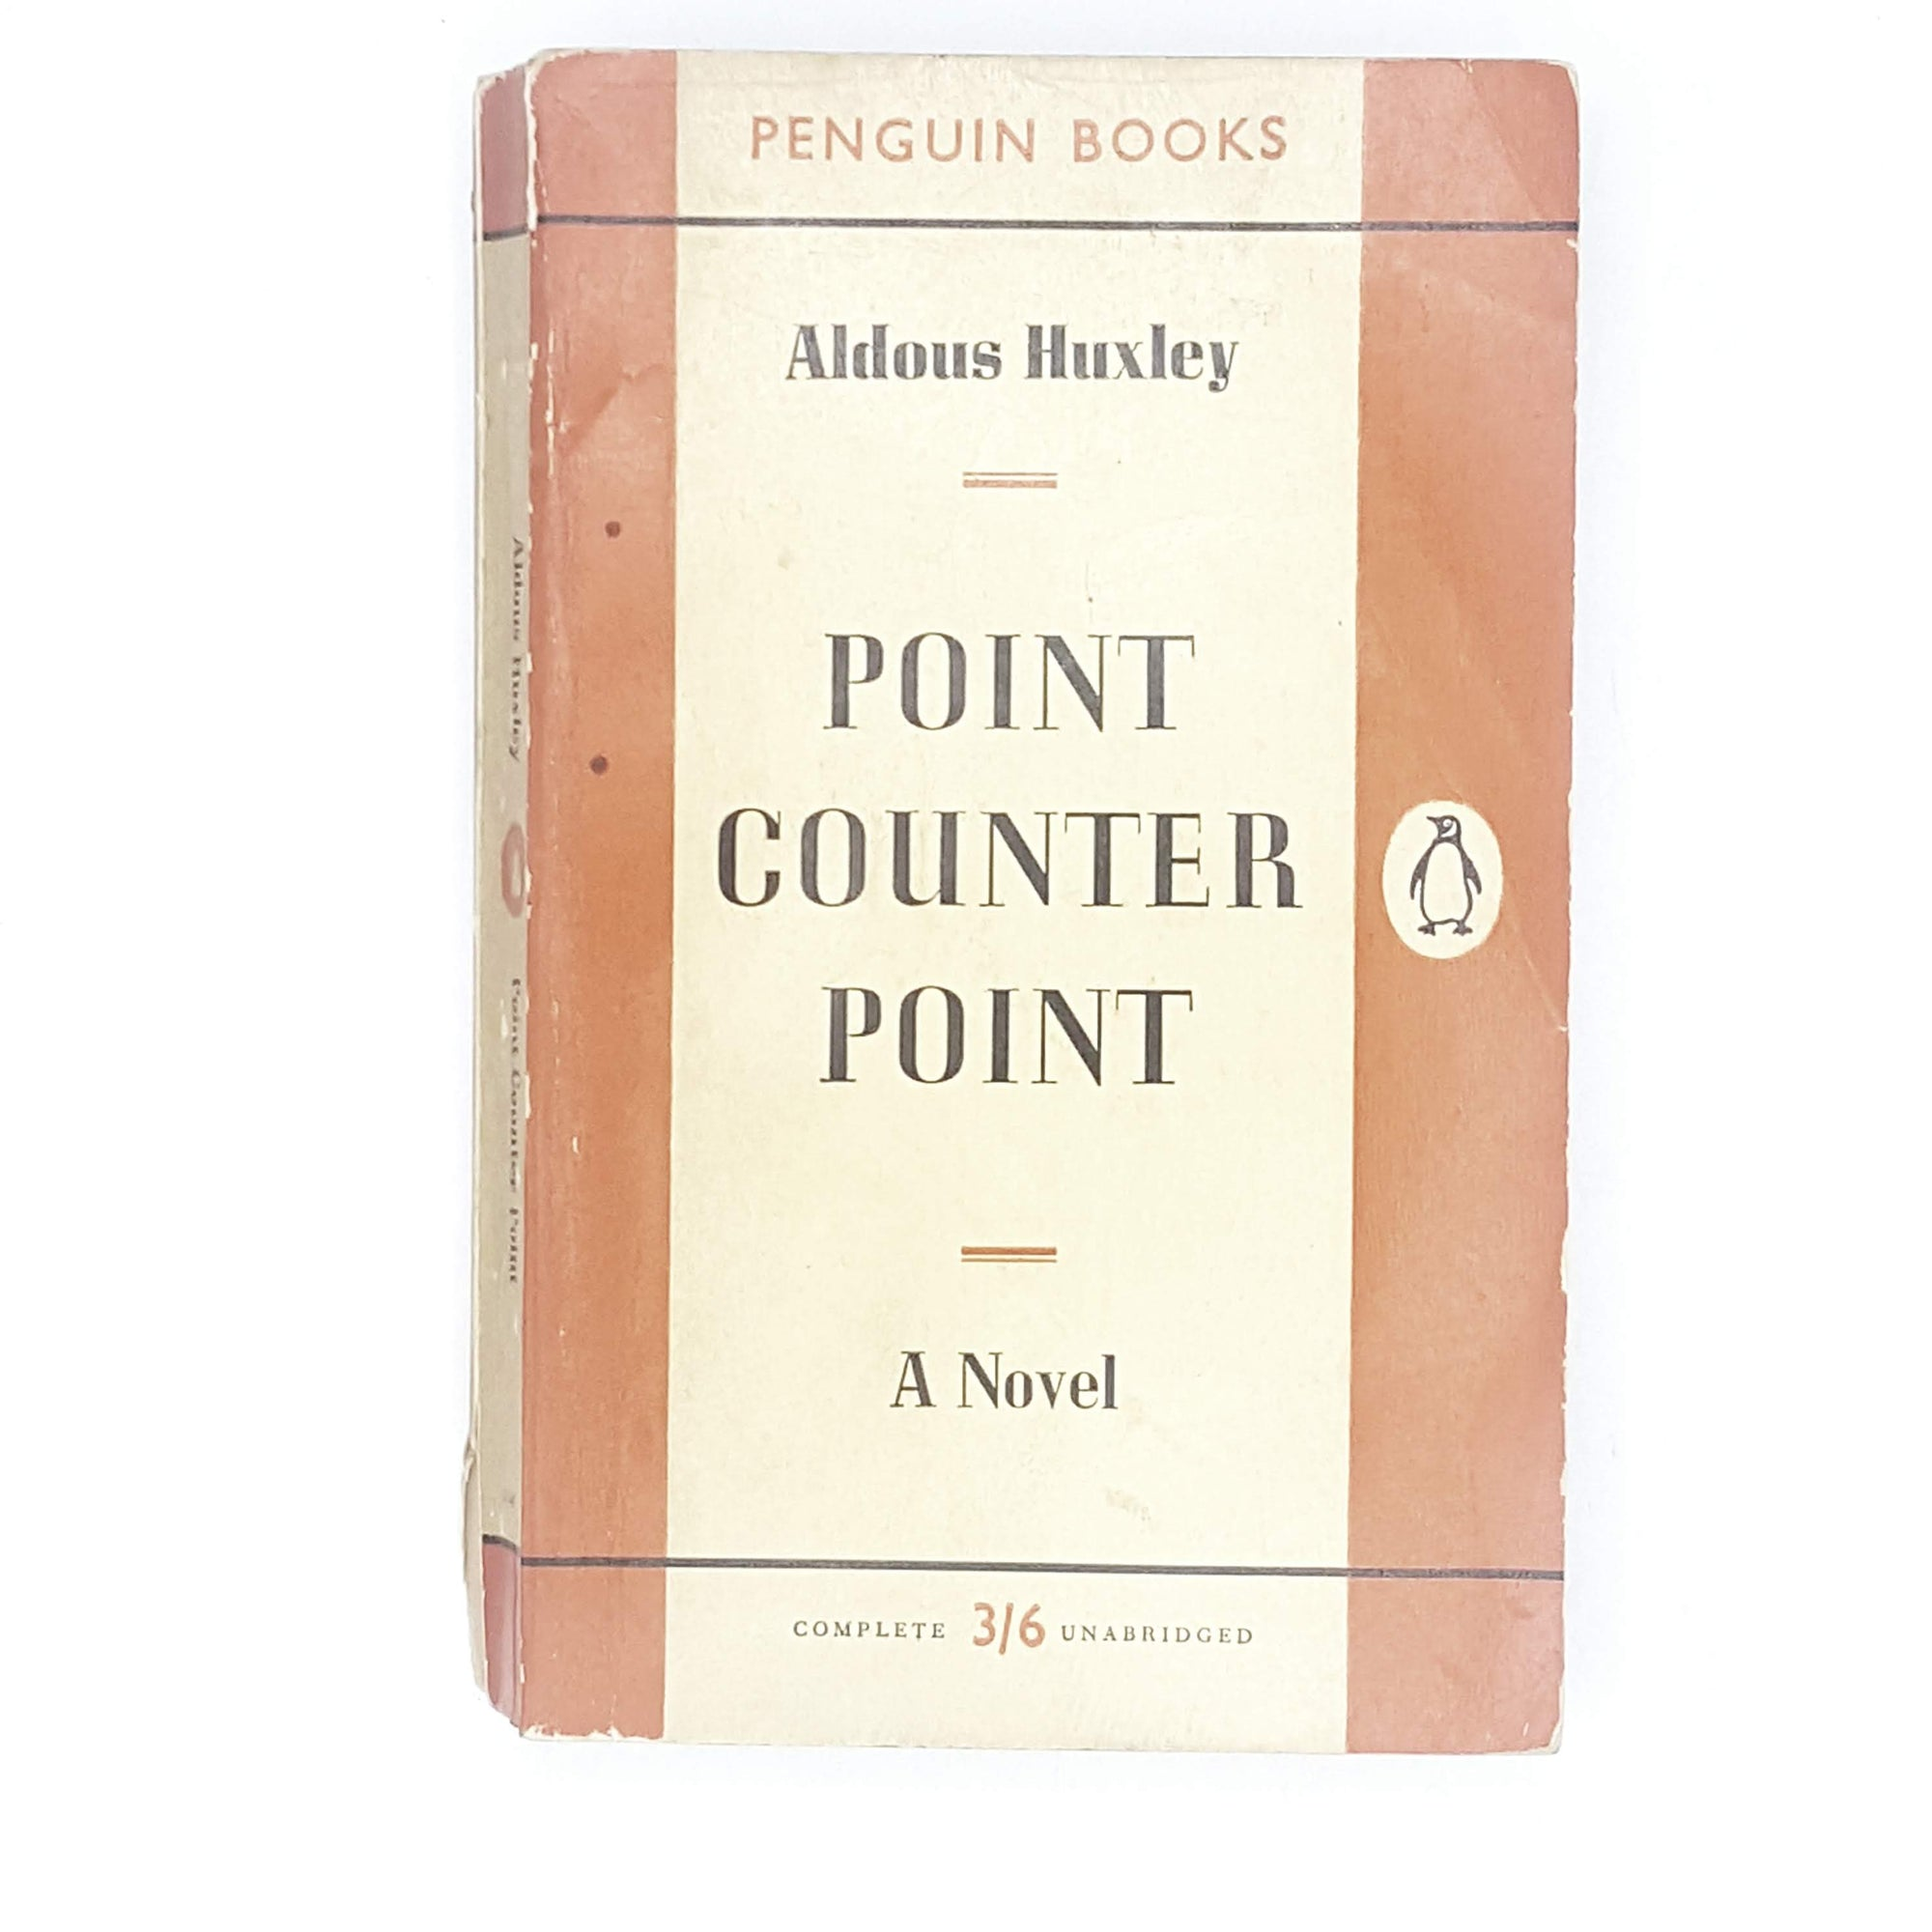 Aldous Huxley's Point Counter Point 1957